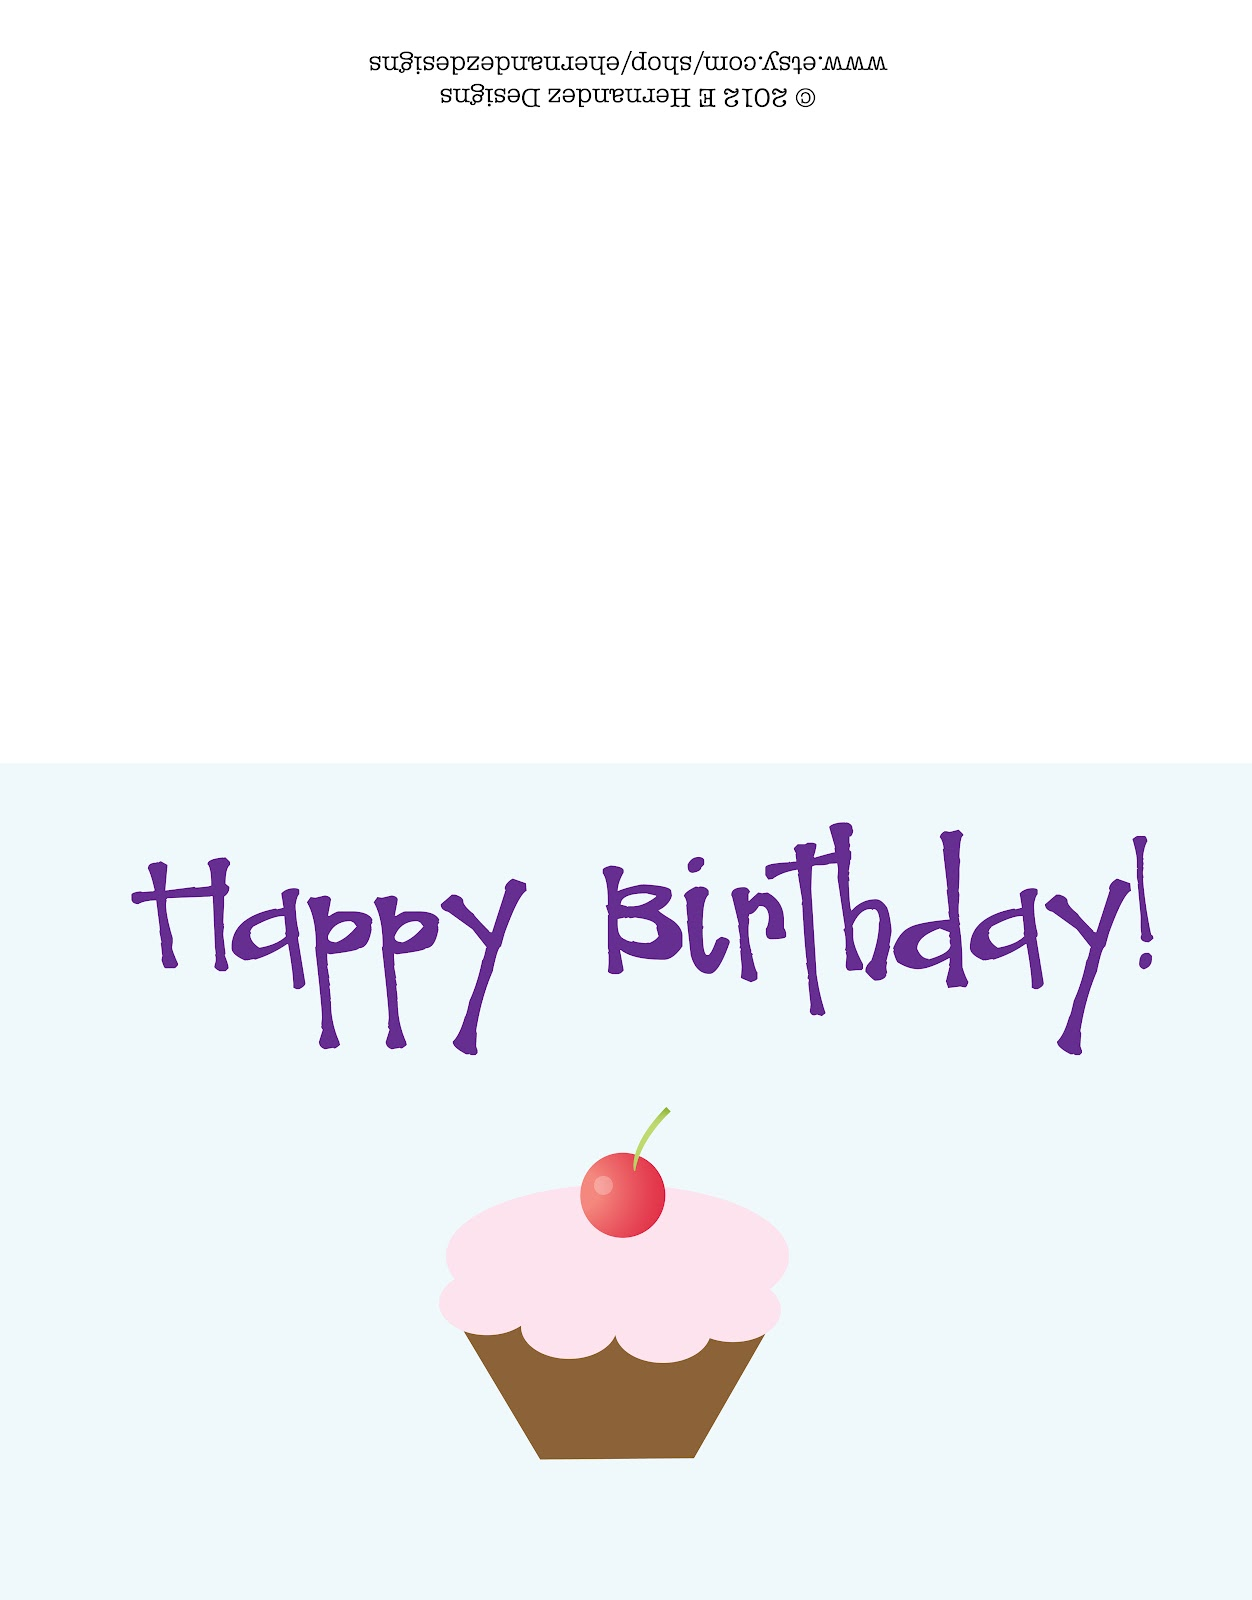 happy birthday card template free – Birthday Cards Print Free